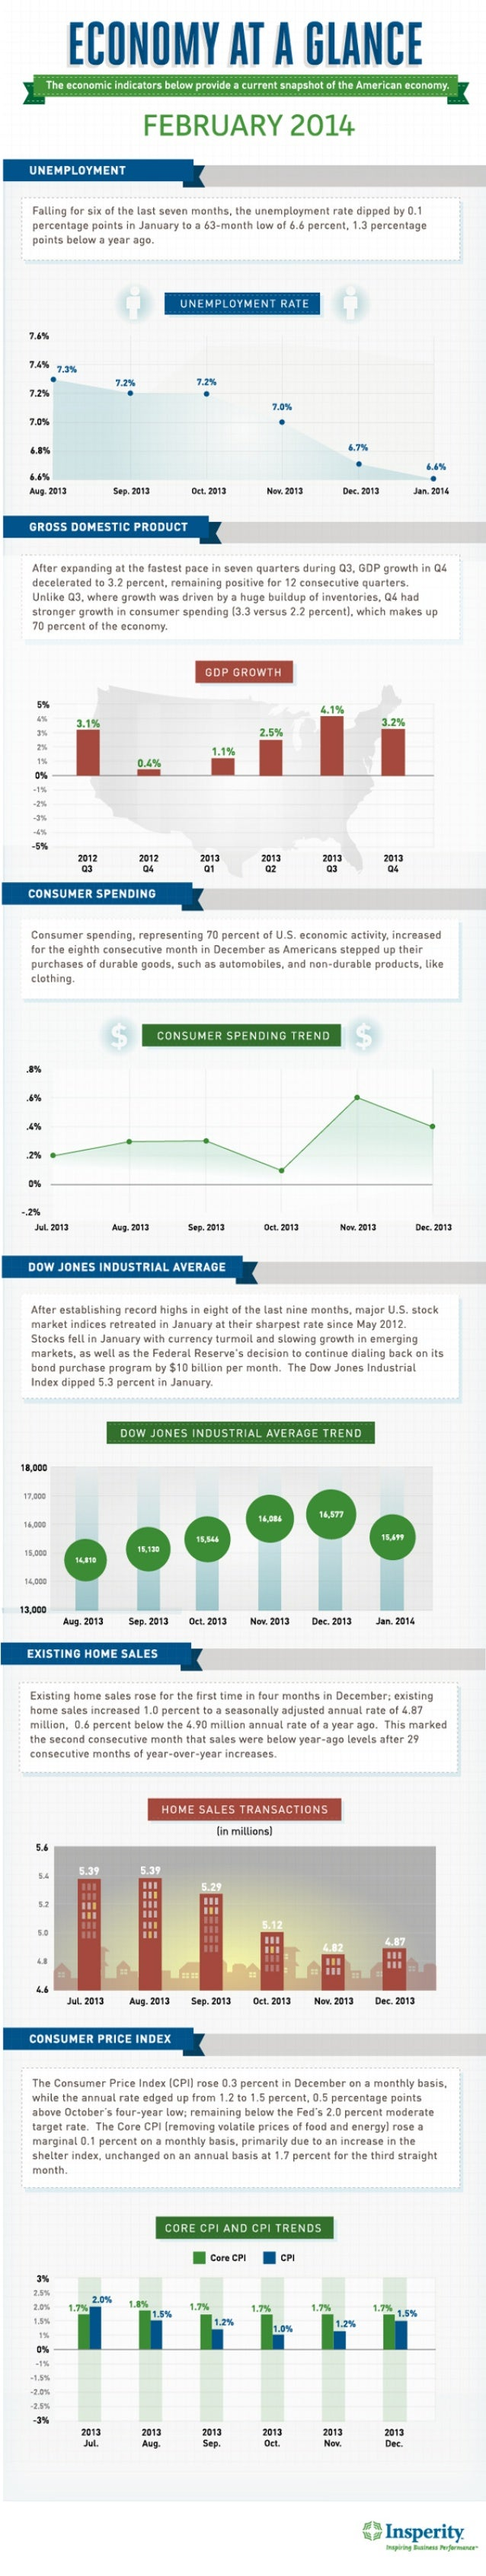 Economy at a Glance: February 2014 [Infographic]